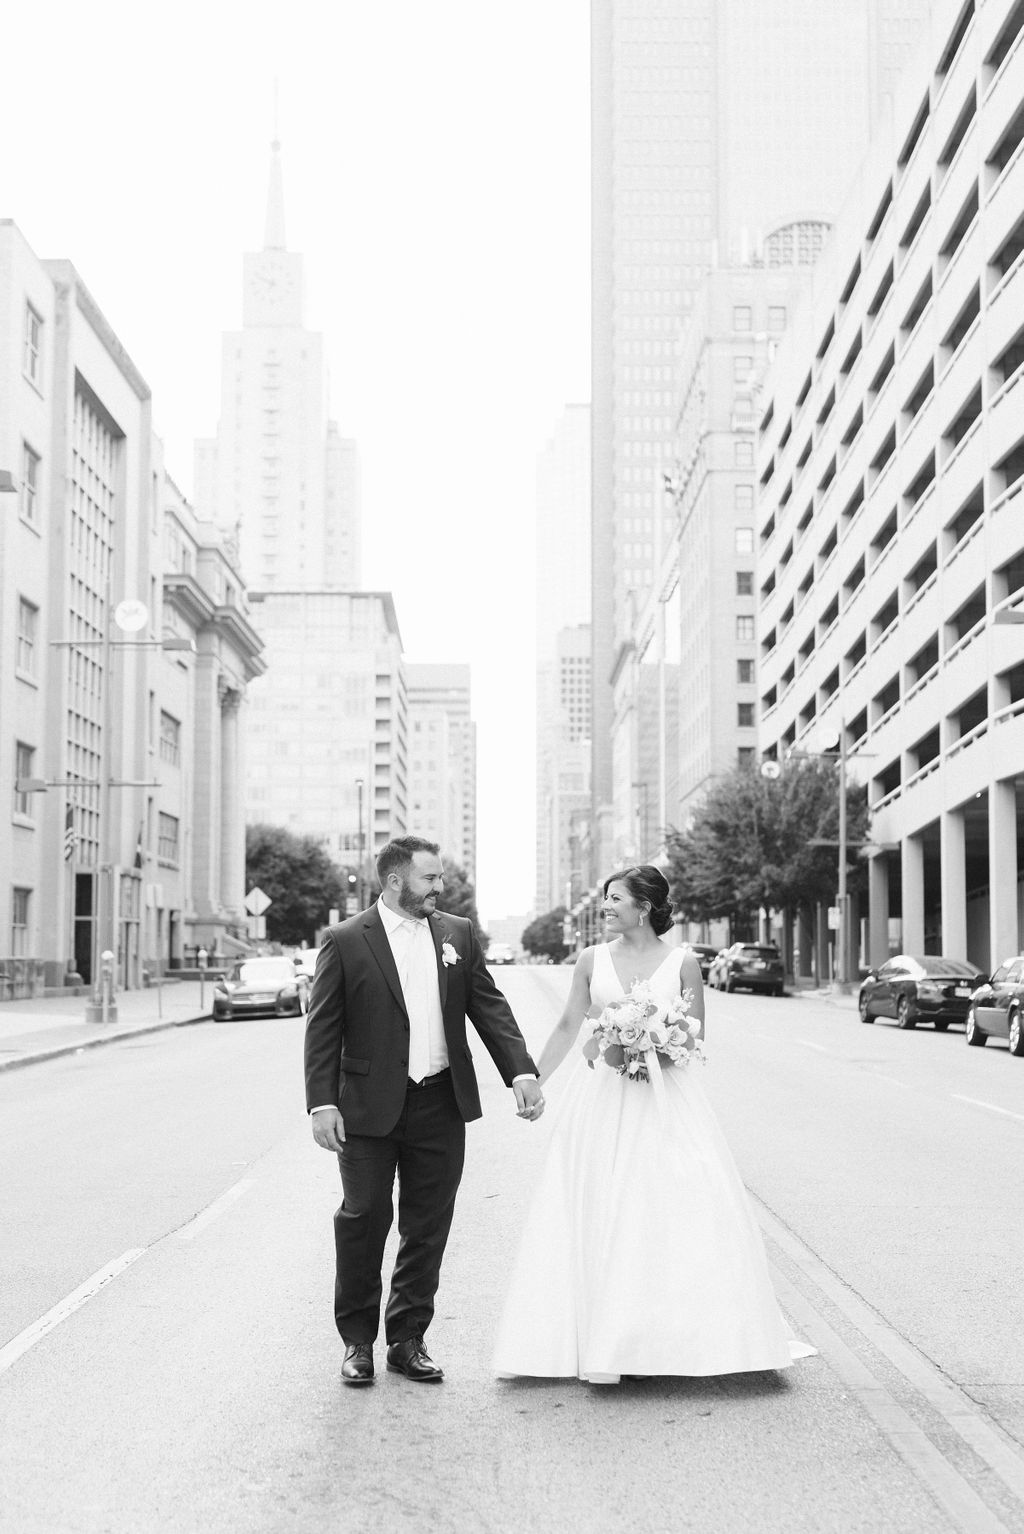 DFW Wedding Photography: Dusty Blue and Blush Wedding at The Room on Main featured on Alexa Kay Events!